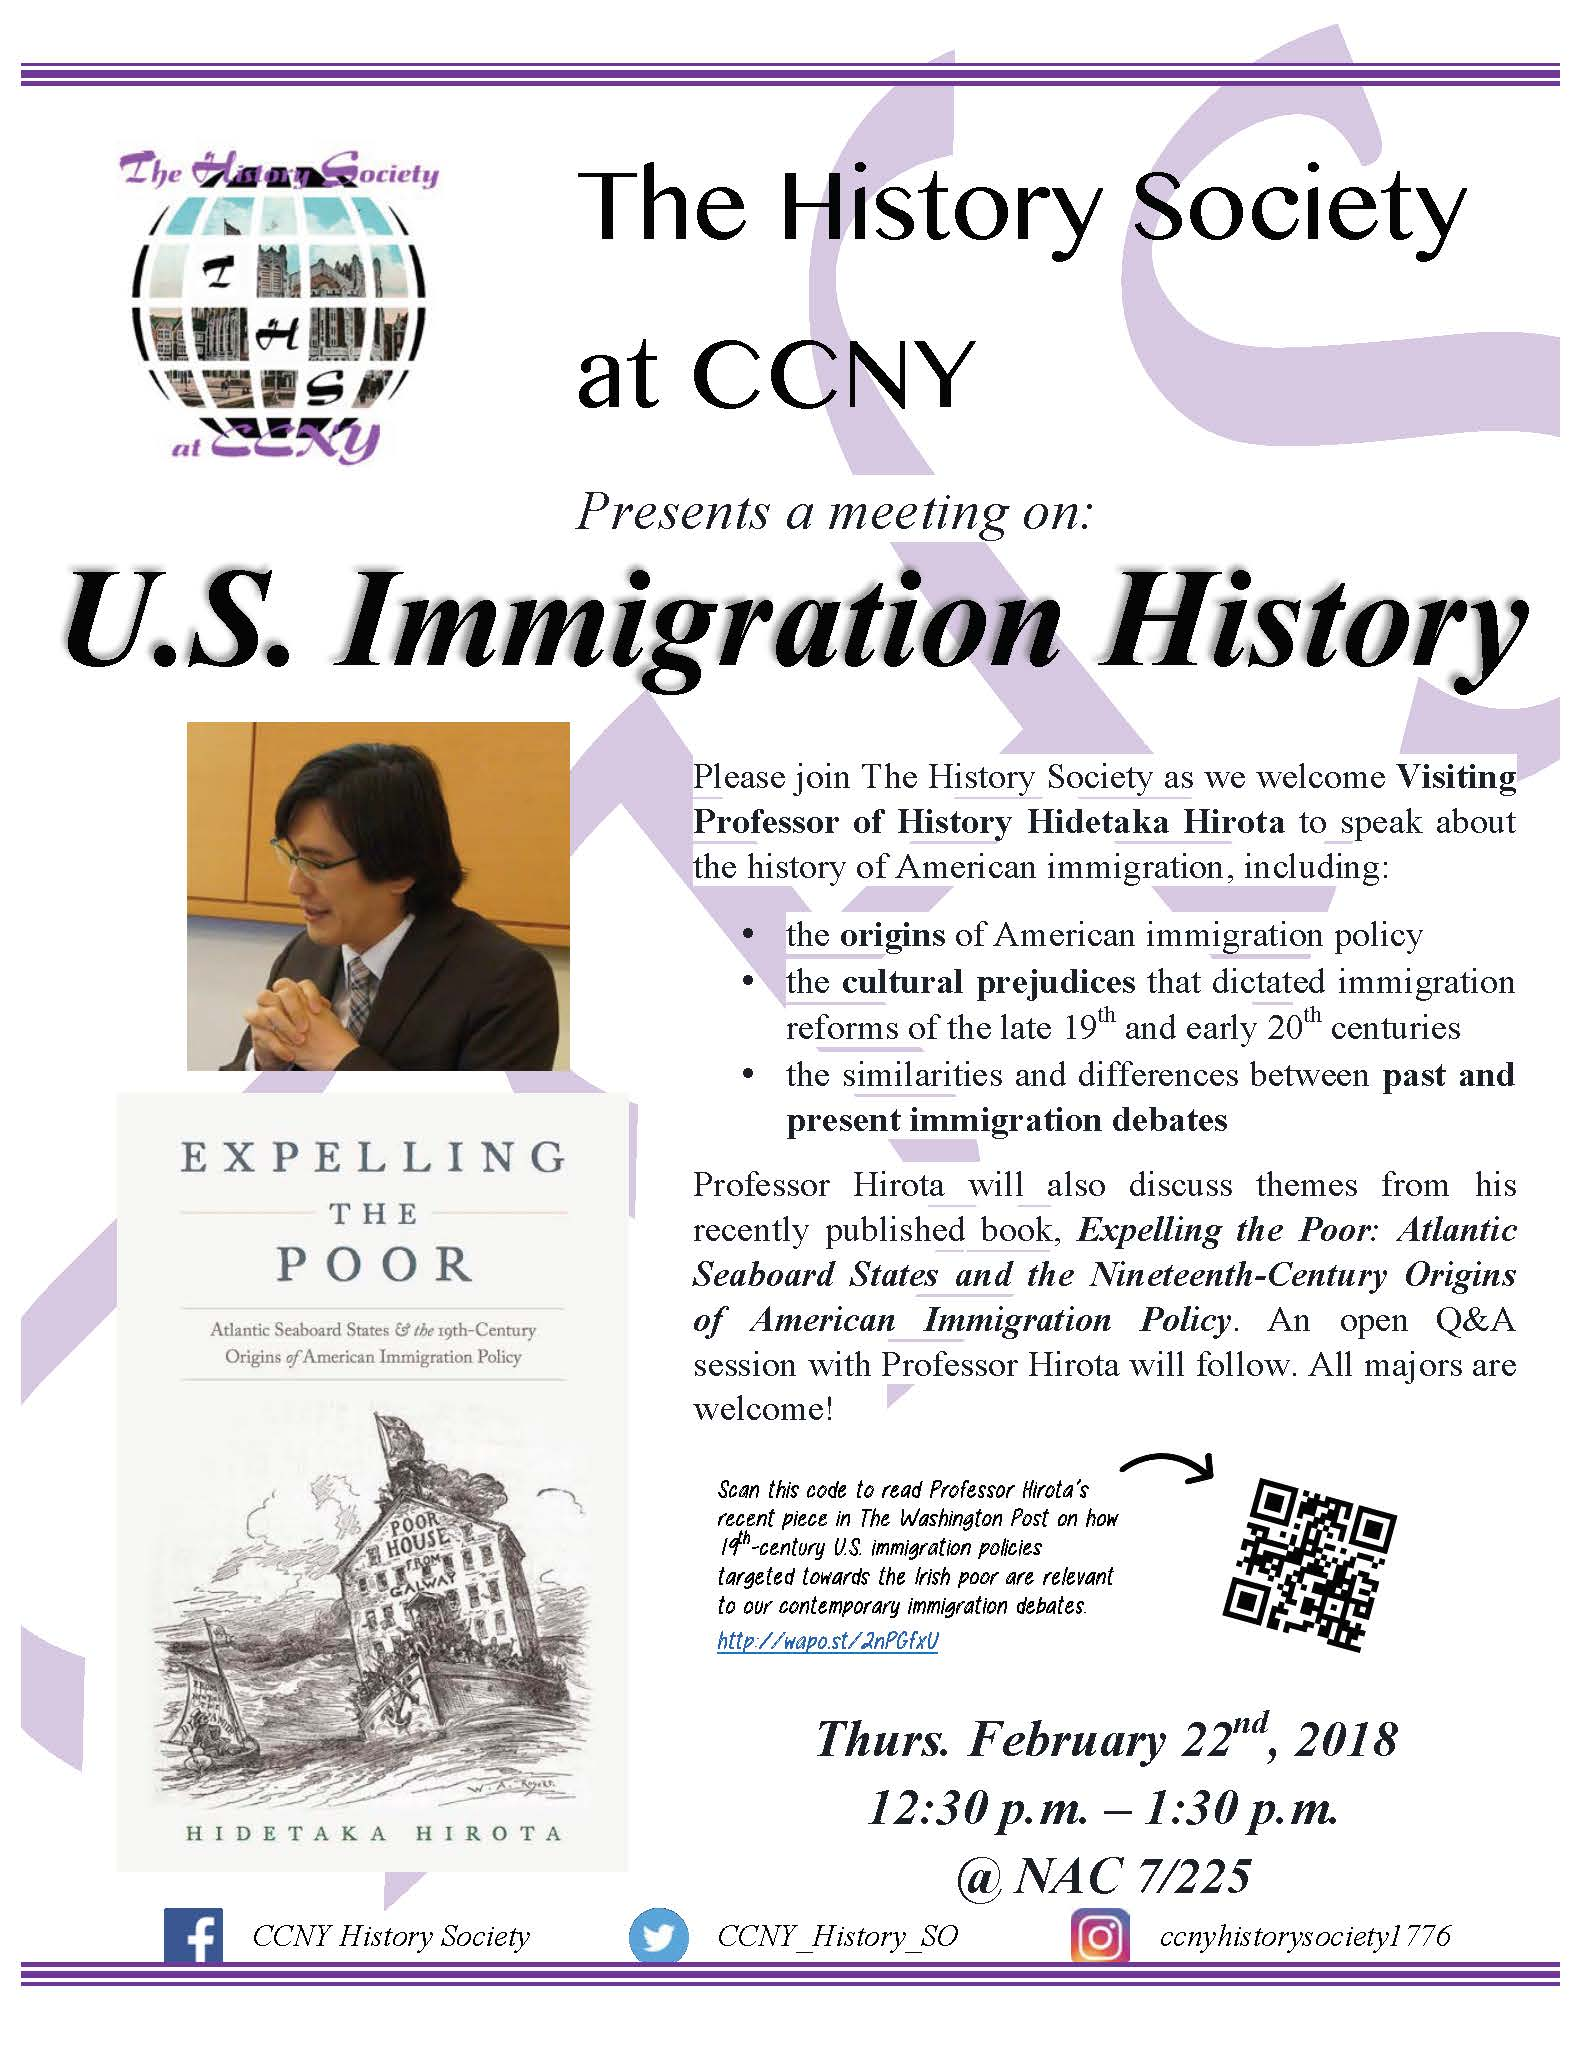 The History Society - U.S. Immigration History - Feb 22nd